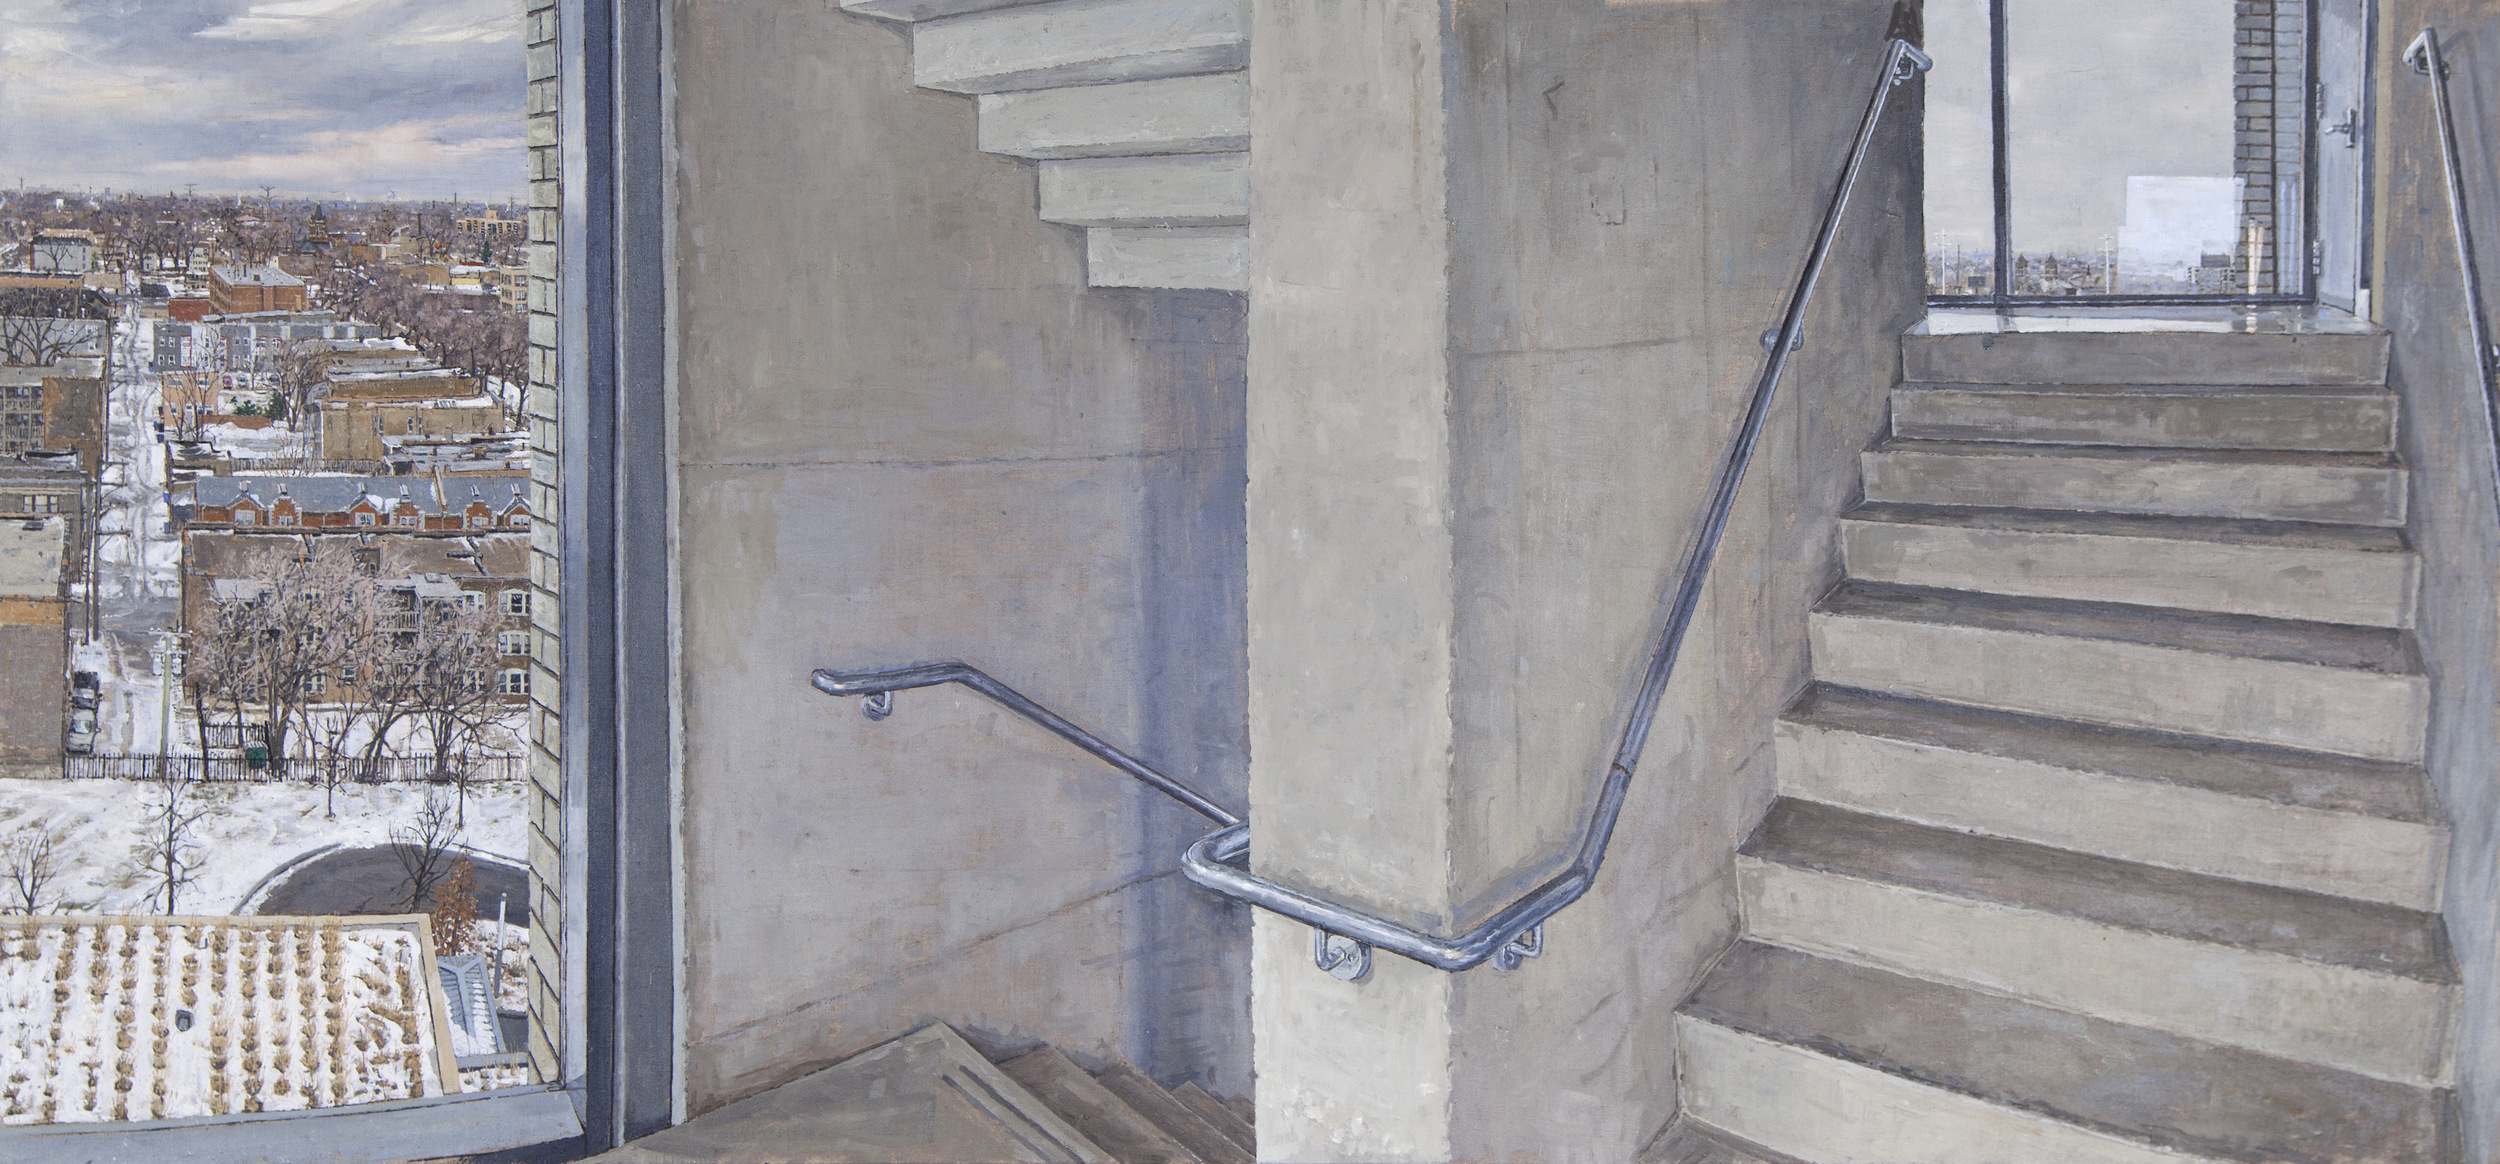 LOGAN CENTER FOR THE ARTS, 10TH FLOOR STAIRWELL, OIL ON LINEN, 24X48'', 2015